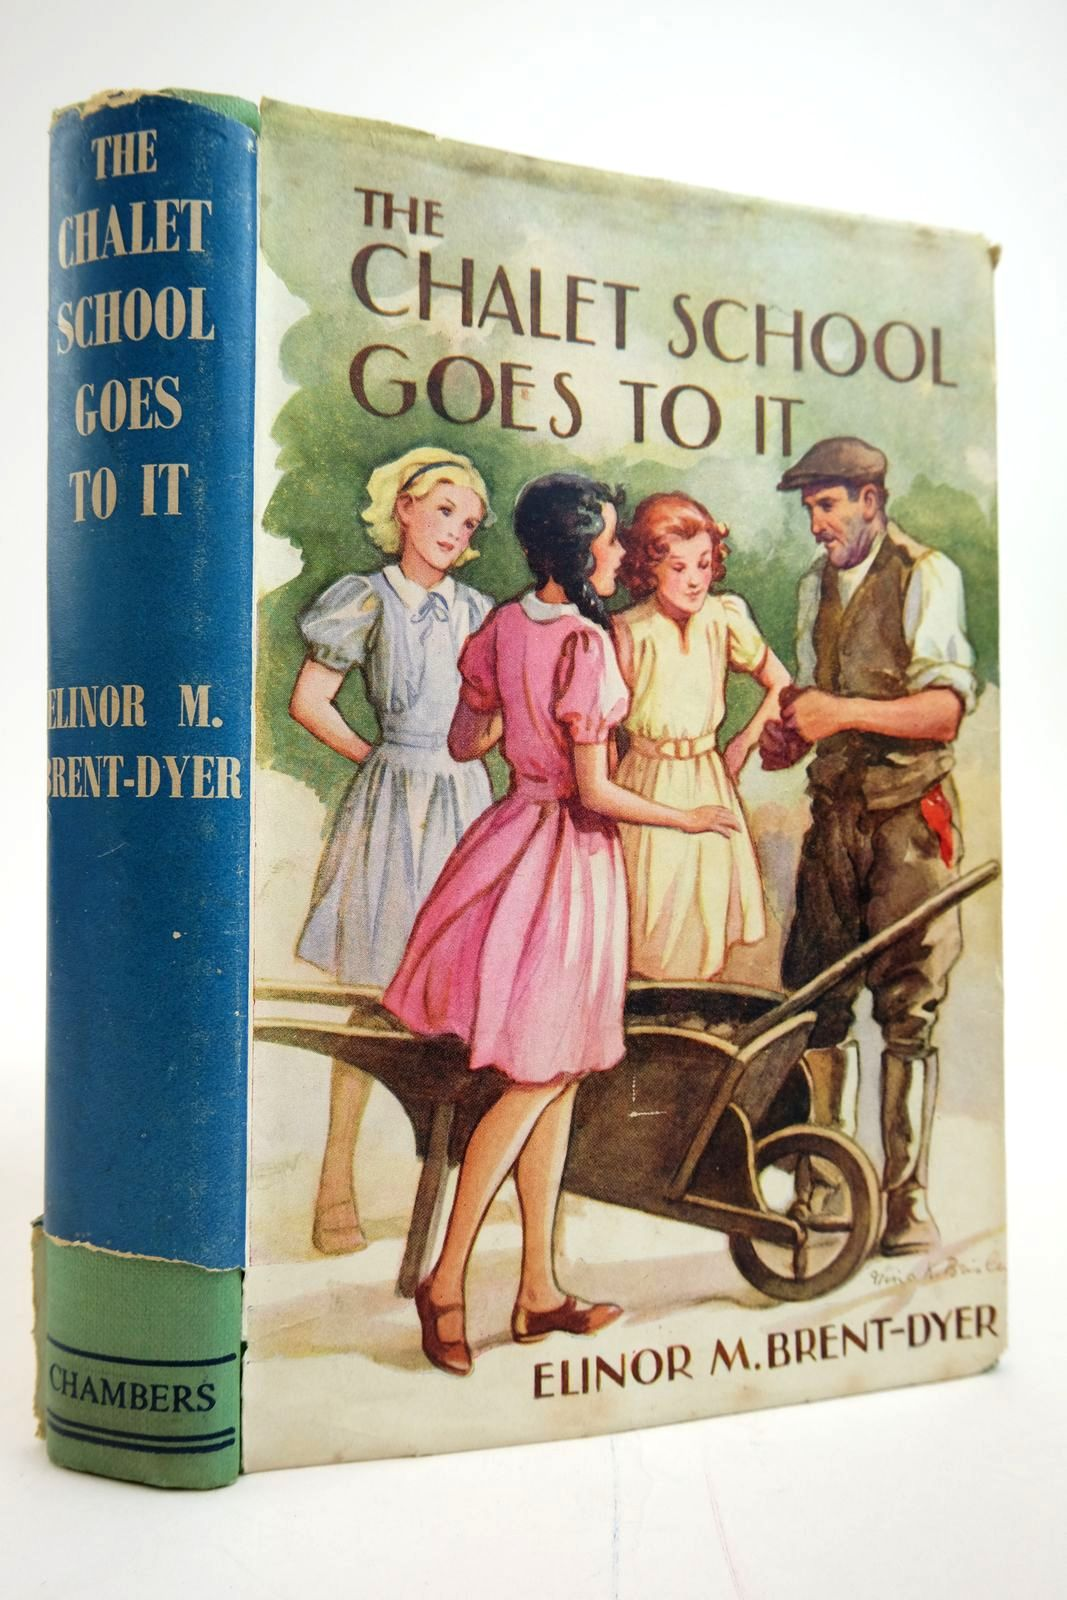 Photo of THE CHALET SCHOOL GOES TO IT written by Brent-Dyer, Elinor M. published by W. & R. Chambers Limited (STOCK CODE: 2135307)  for sale by Stella & Rose's Books